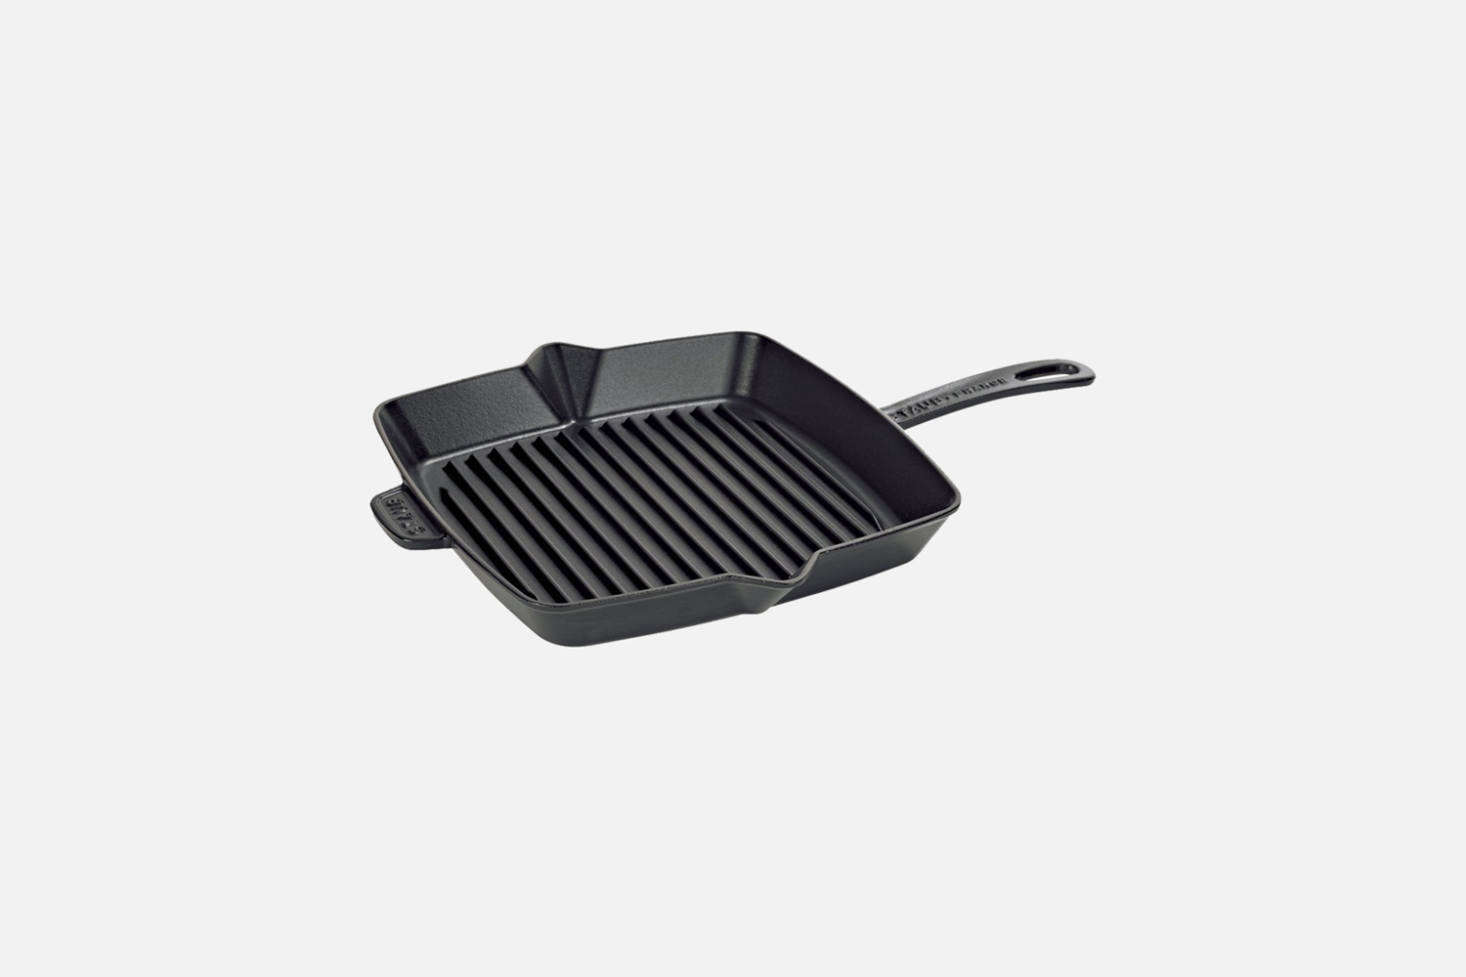 The Staub 12-Inch Cast Iron Square Grill Pan in Black is $160 at Amazon. The brand offers a wide collection of other enameled cast iron cookware pieces available on Amazon and at Williams-Sonoma or Sur La Table. The pan is one of five featured in our post 5 Favorites: The Indispensable Grill Pan.